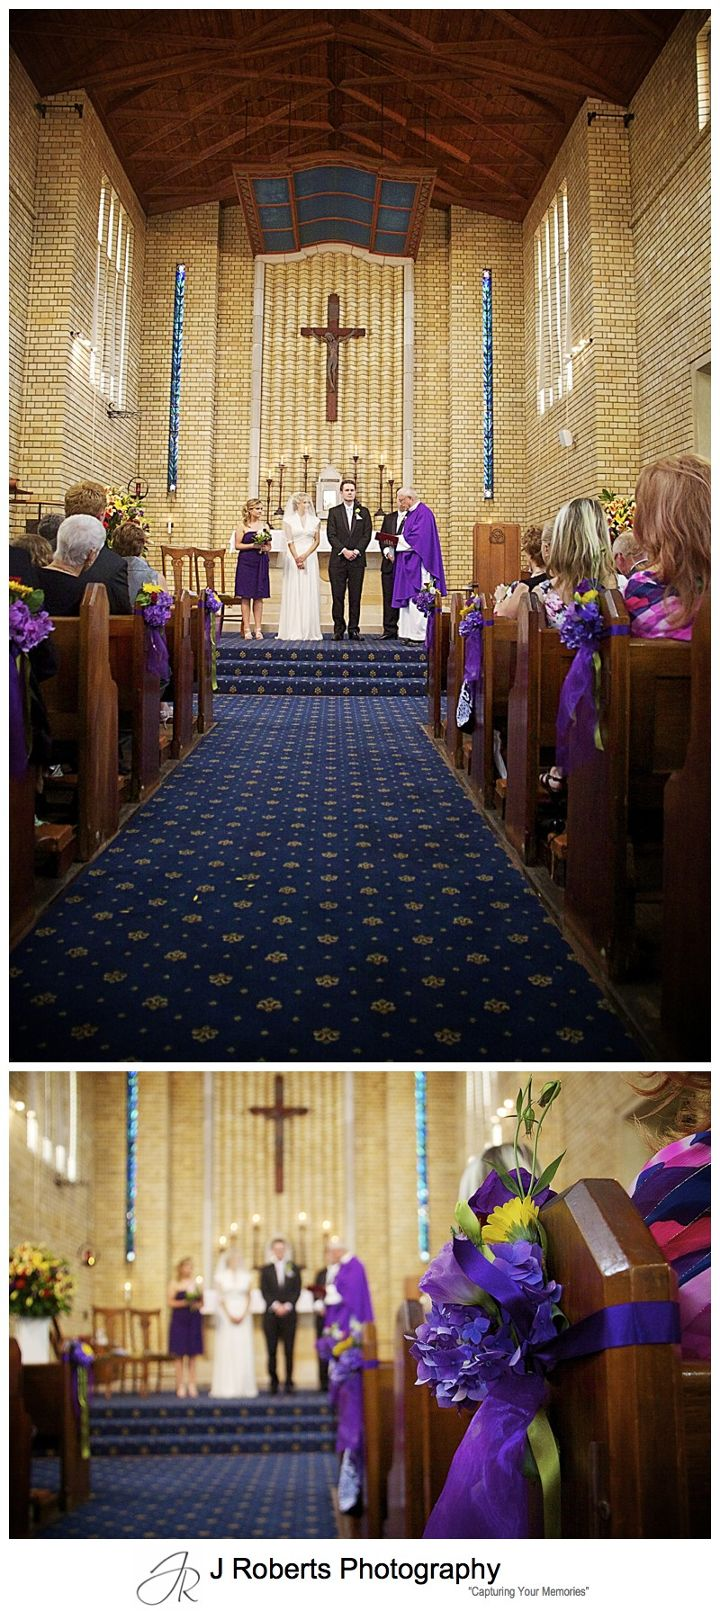 Bride and groom at end of decorated church aisle - wedding photography sydney